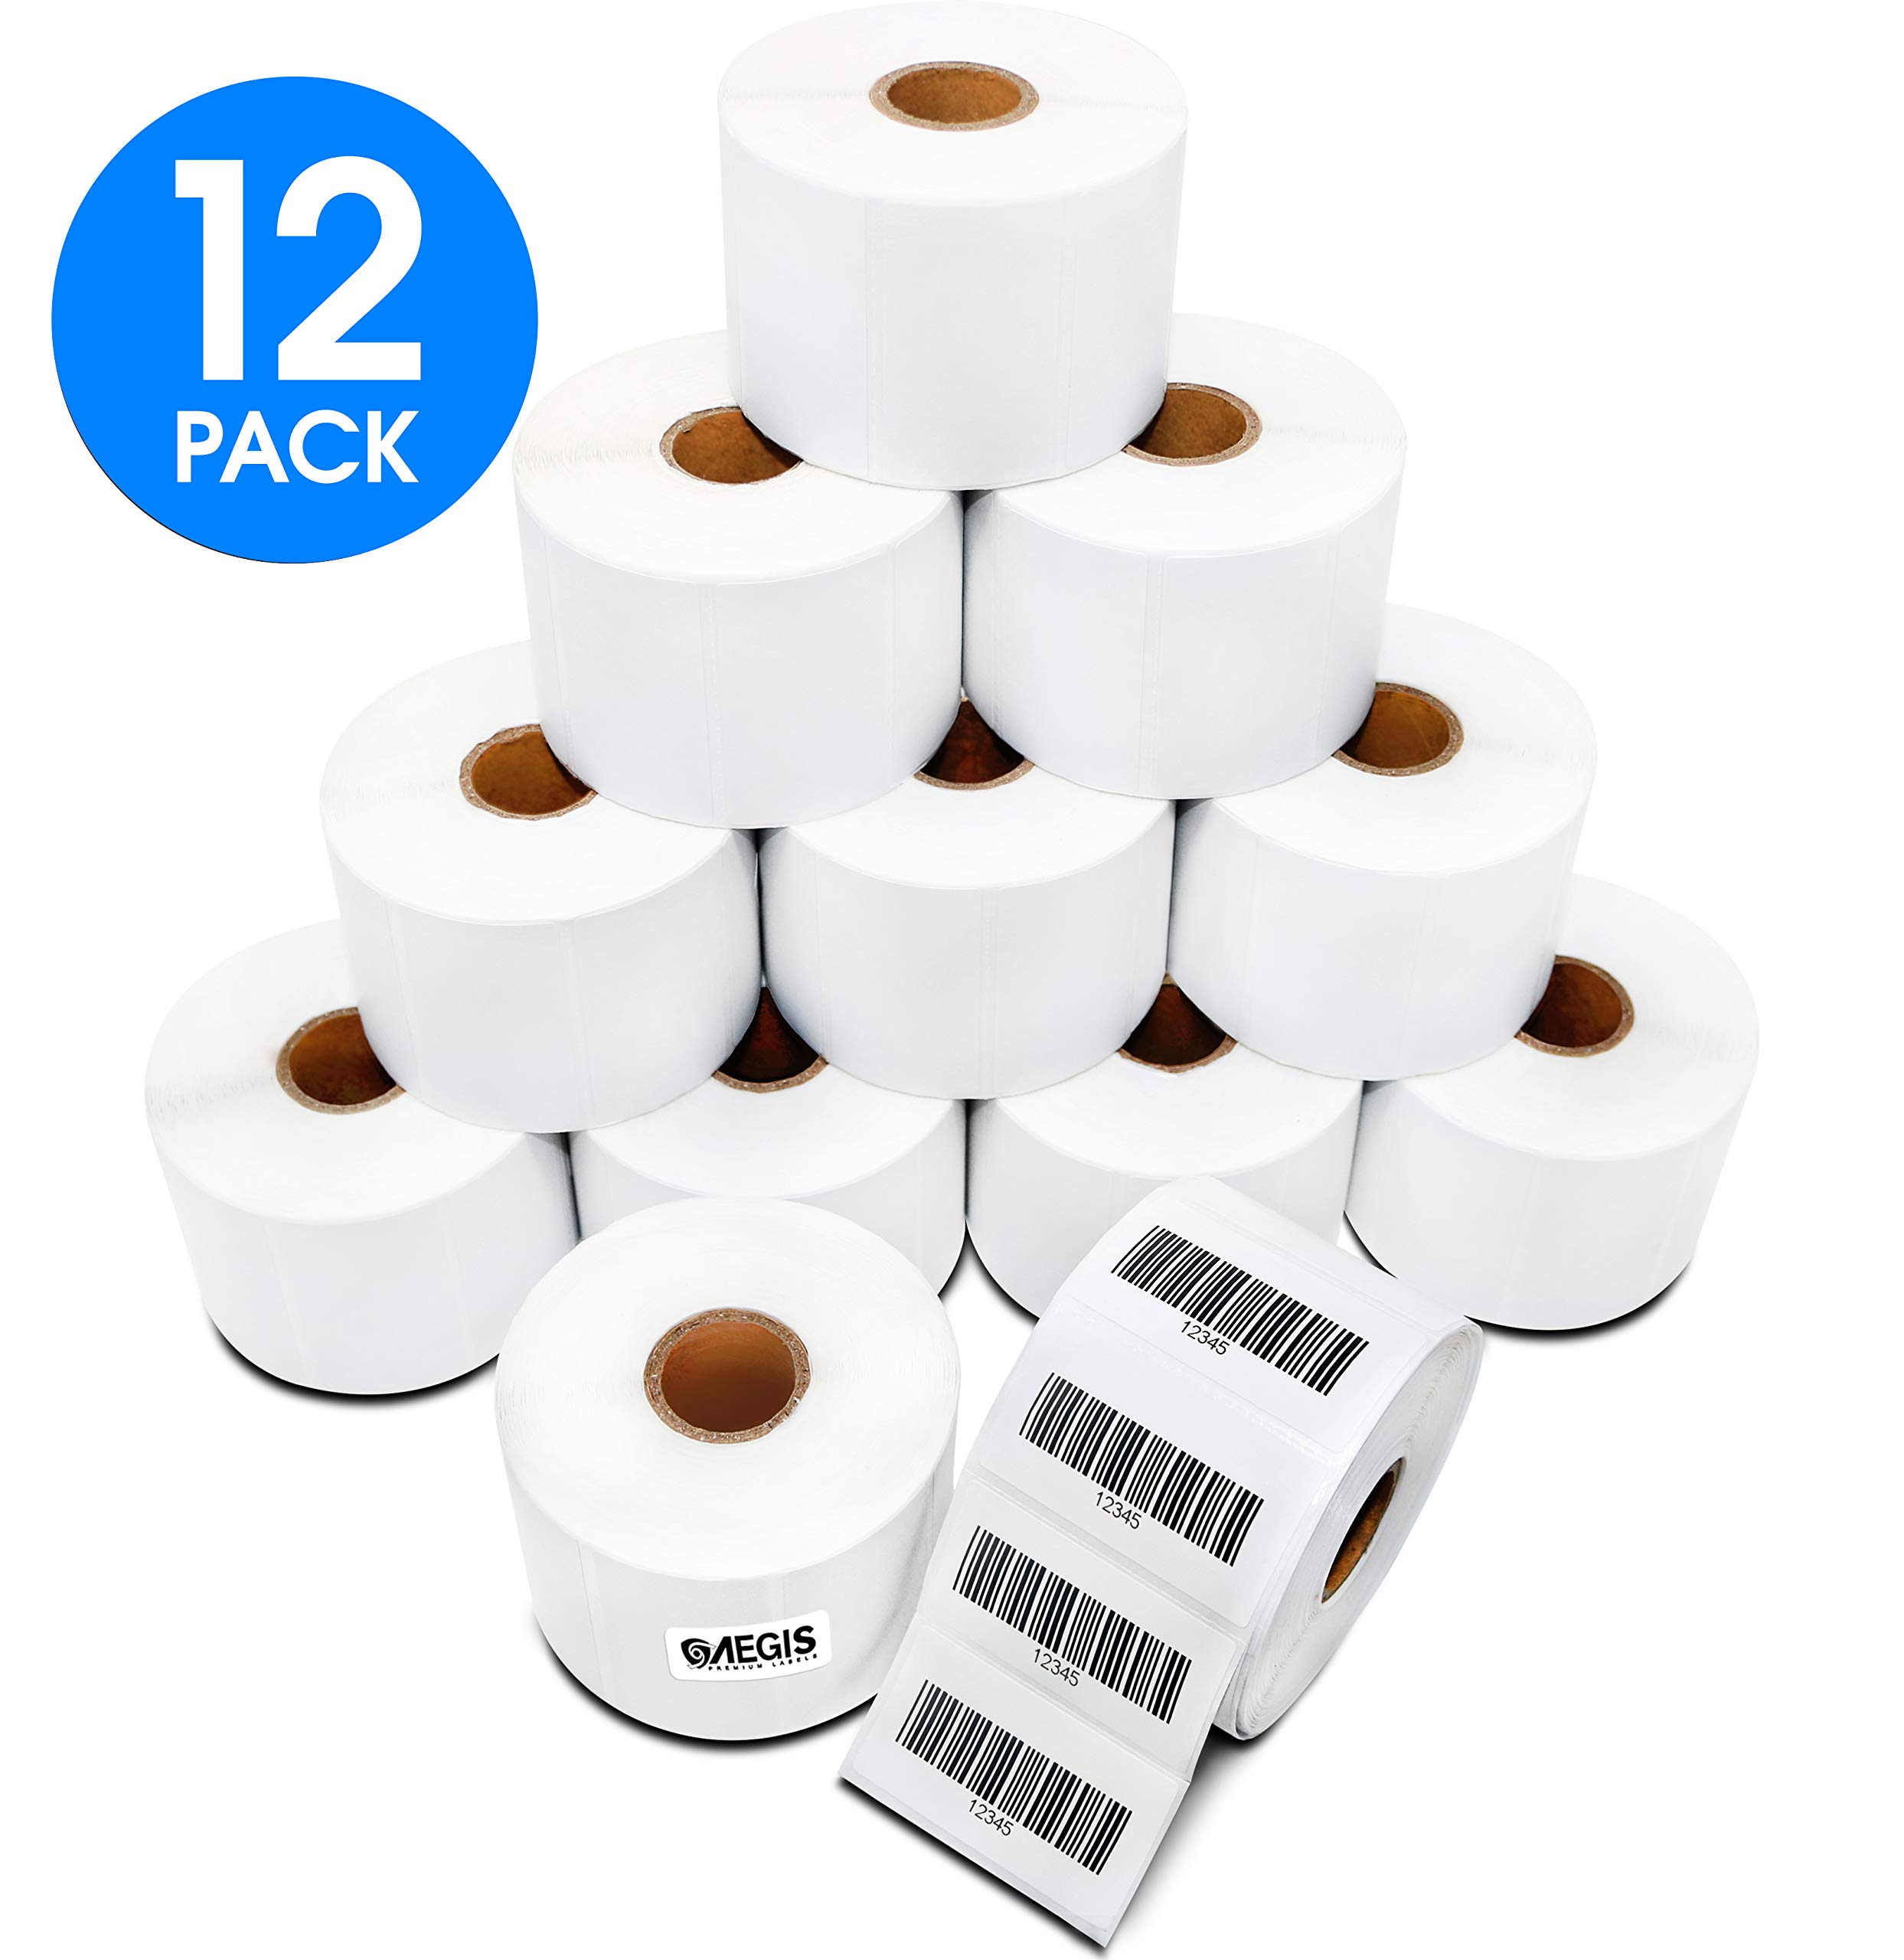 [12 Rolls, 1,000/Roll] Aegis 2 1/4 Inch X 1 1/4 Inch Direct Thermal Labels, Perforations Between Labels - Zebra/Eltron Compatible (NOT Dymo Compatible)